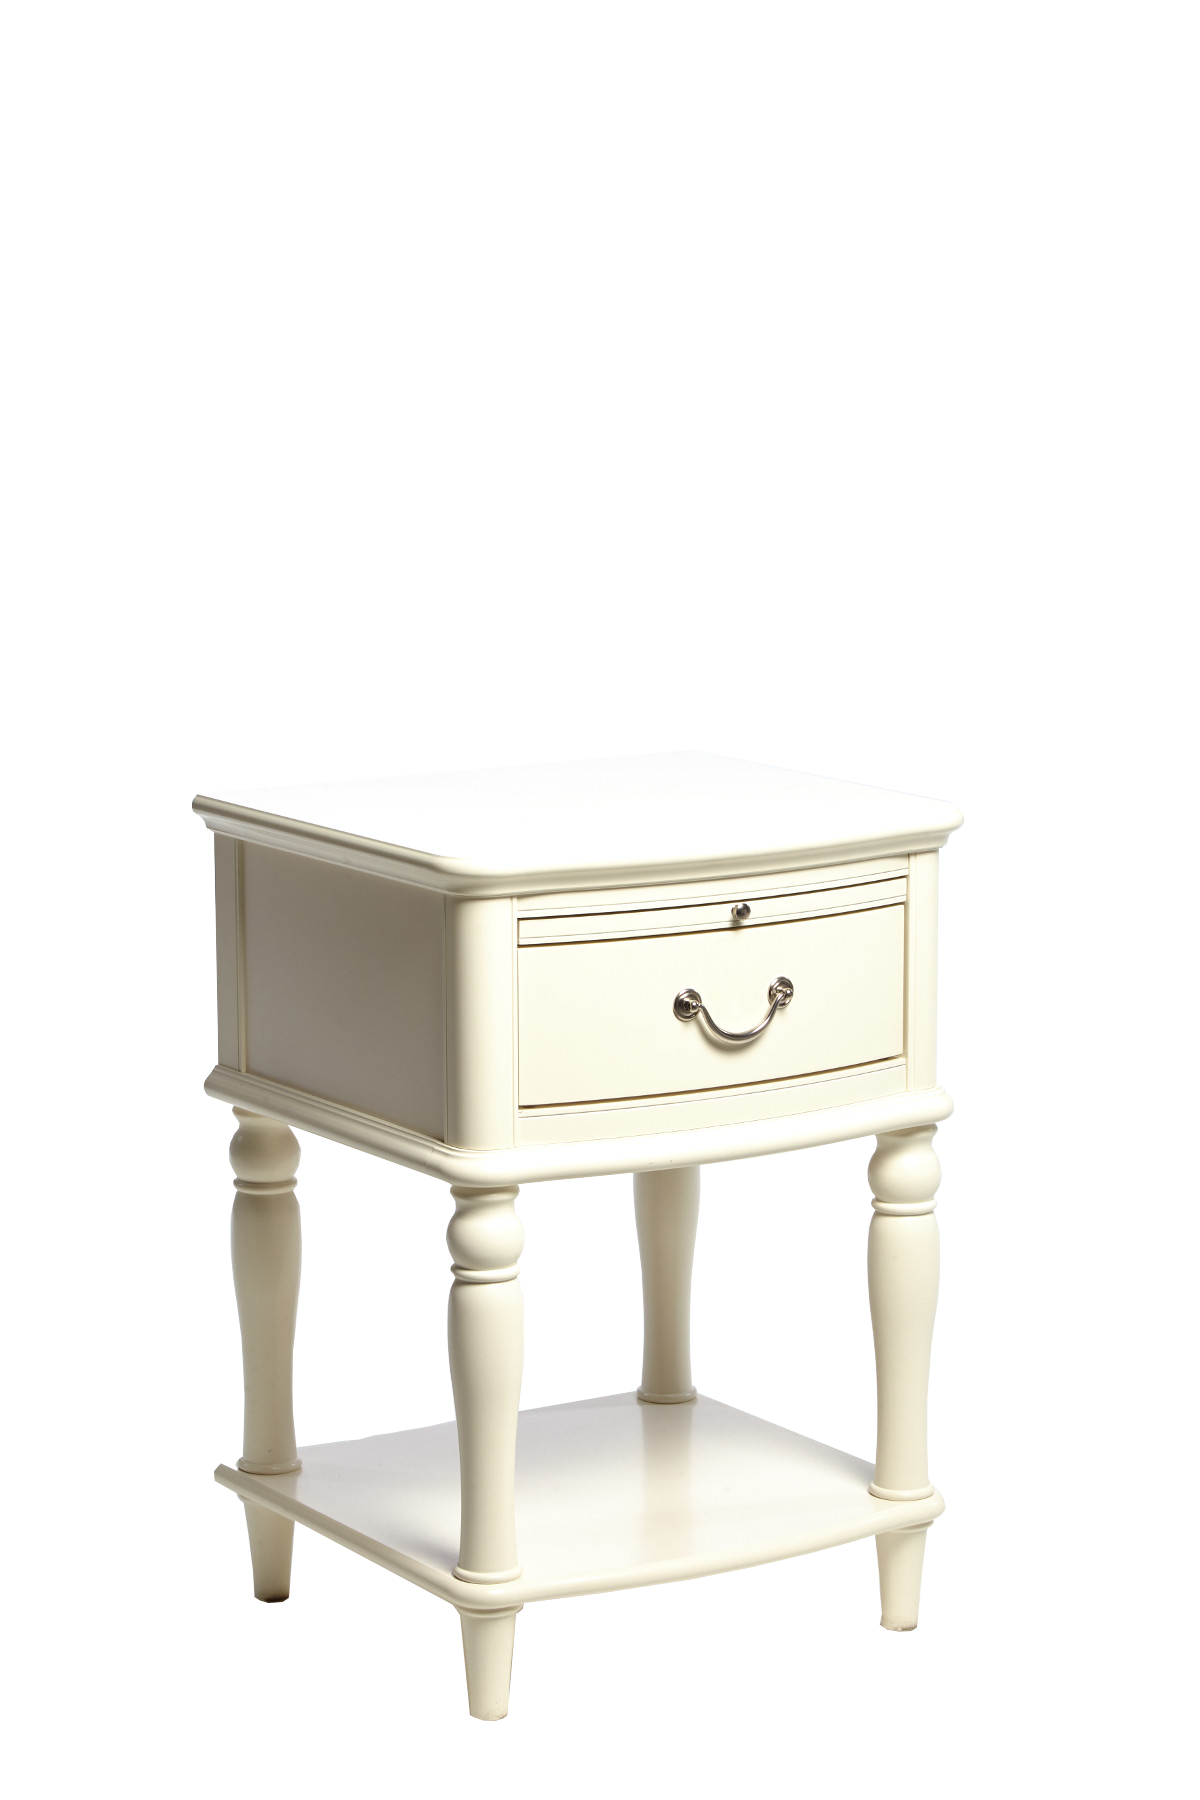 Picardy 1 Drawer Bedside Chest